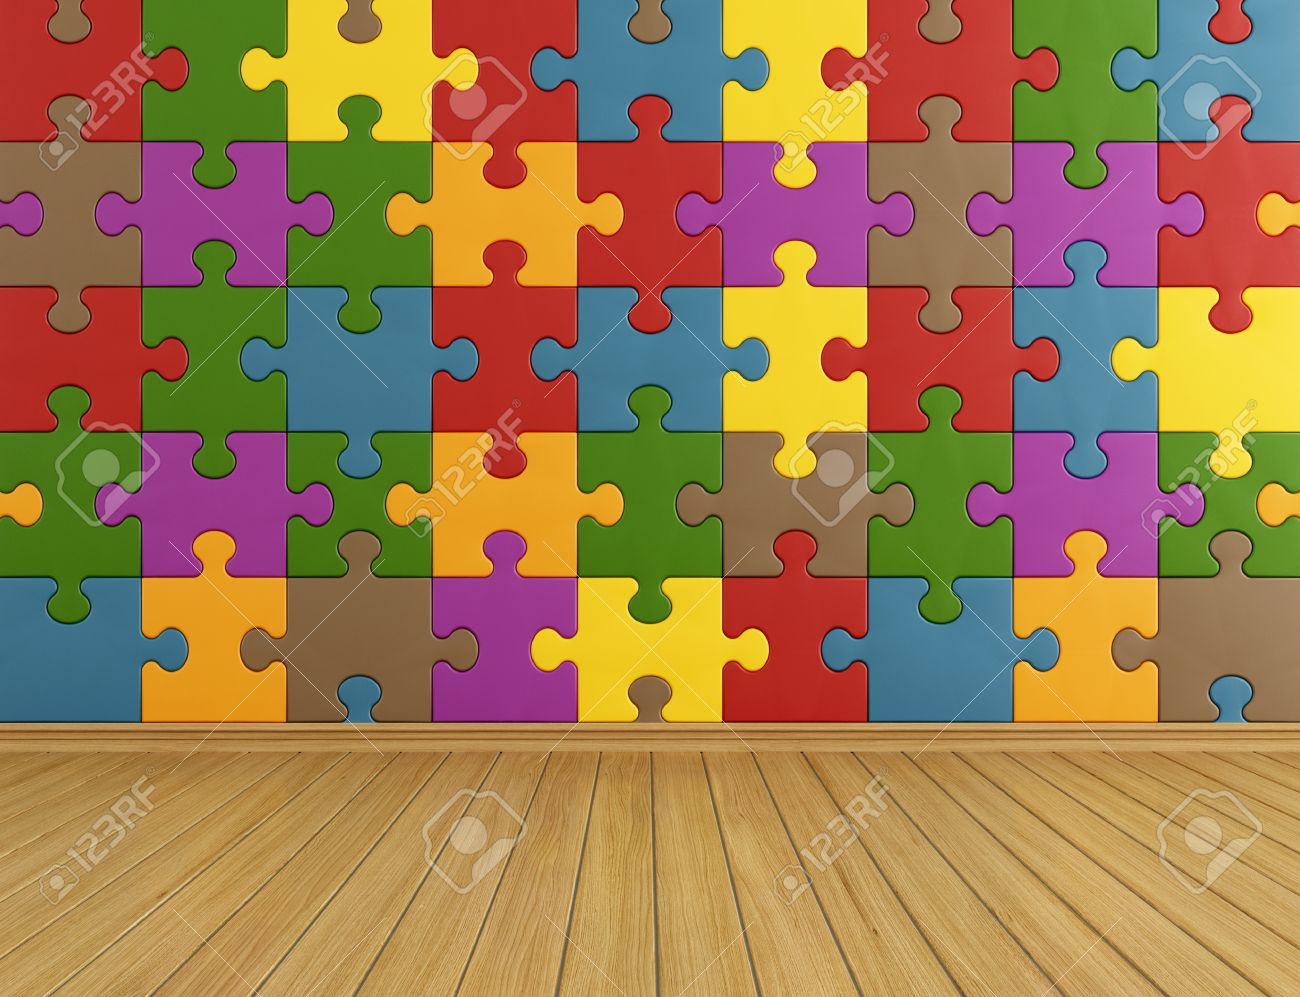 Toys Room With Colorful Puzzle On Wall And Wooden Floor